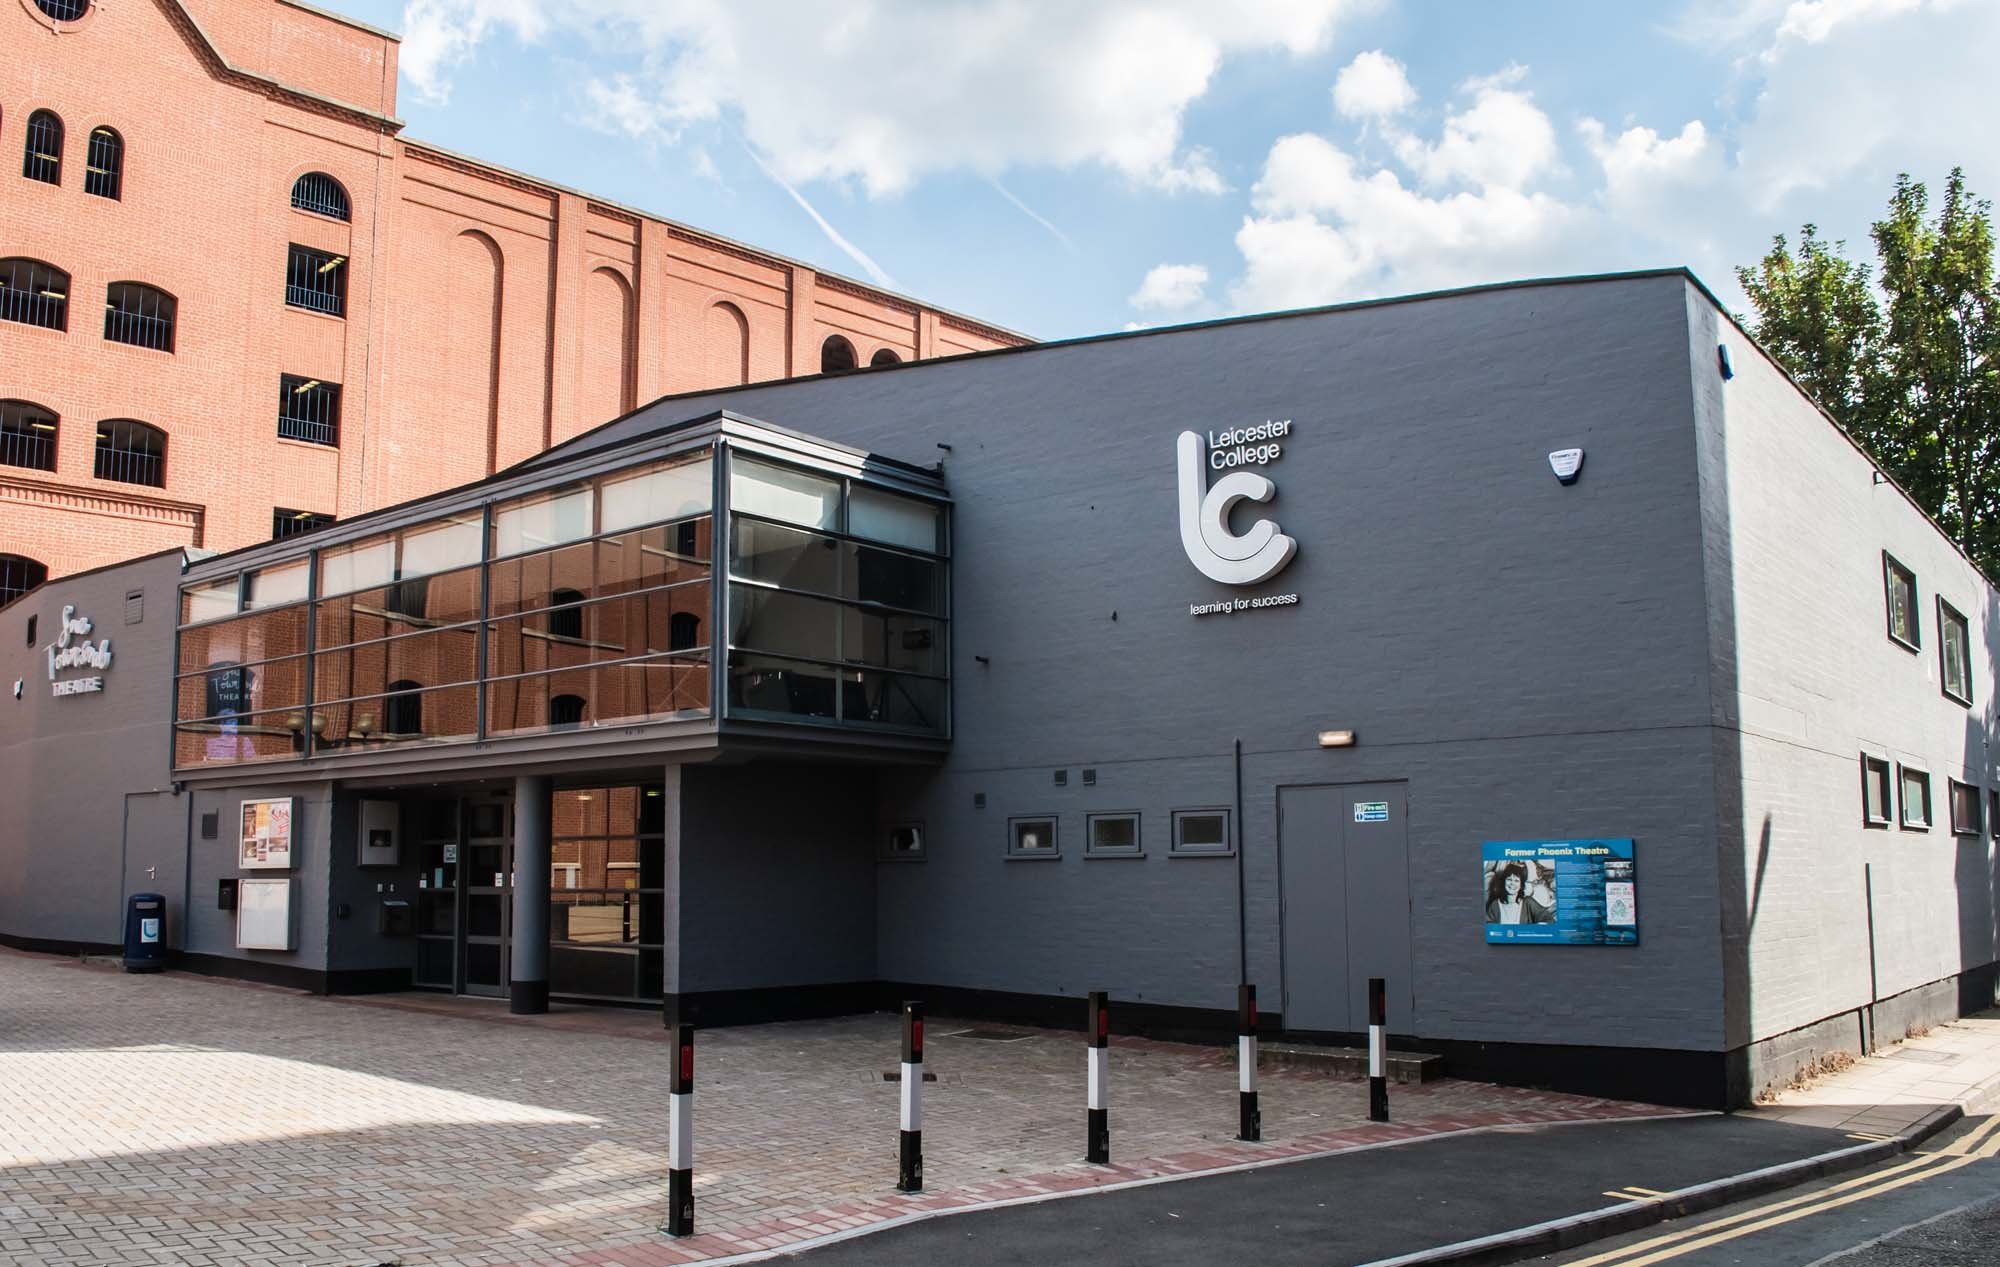 The Sue Townsend Theatre -